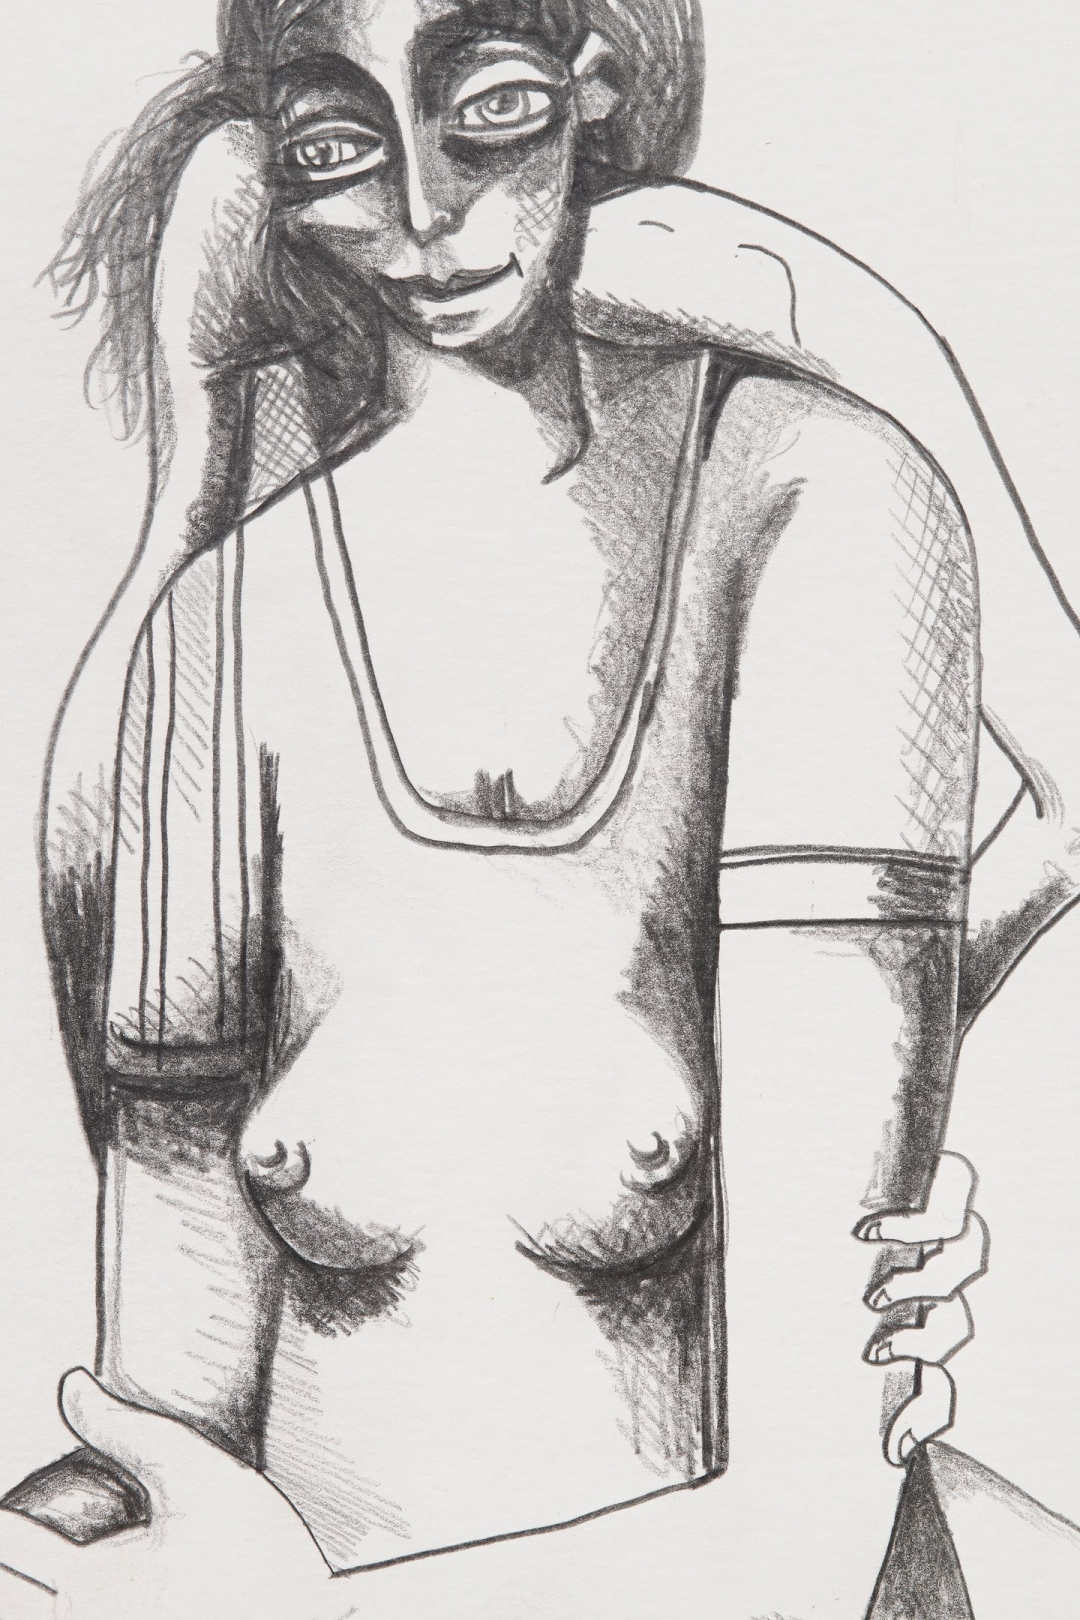 George Condo, <i>Study for Incomprehensible Dream I</i>, 2003, Pencil on paper, 12 5/8 x 9 1/2 in. (32 x 24 cm)